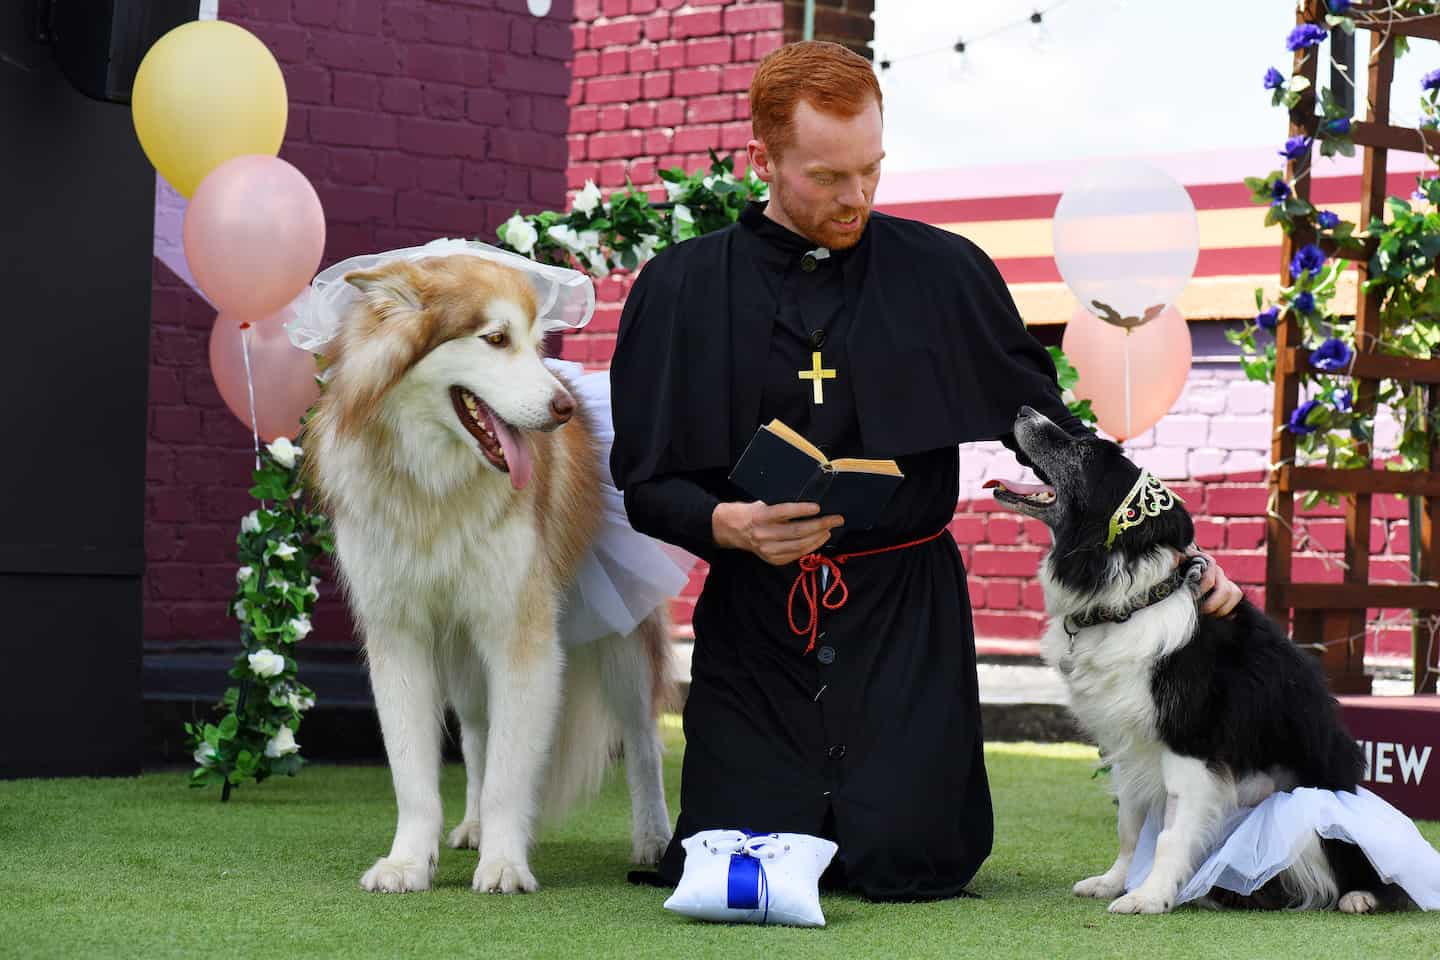 London Dog Wedding At The Rooftop Film Club Wooftop Wedding Service 3